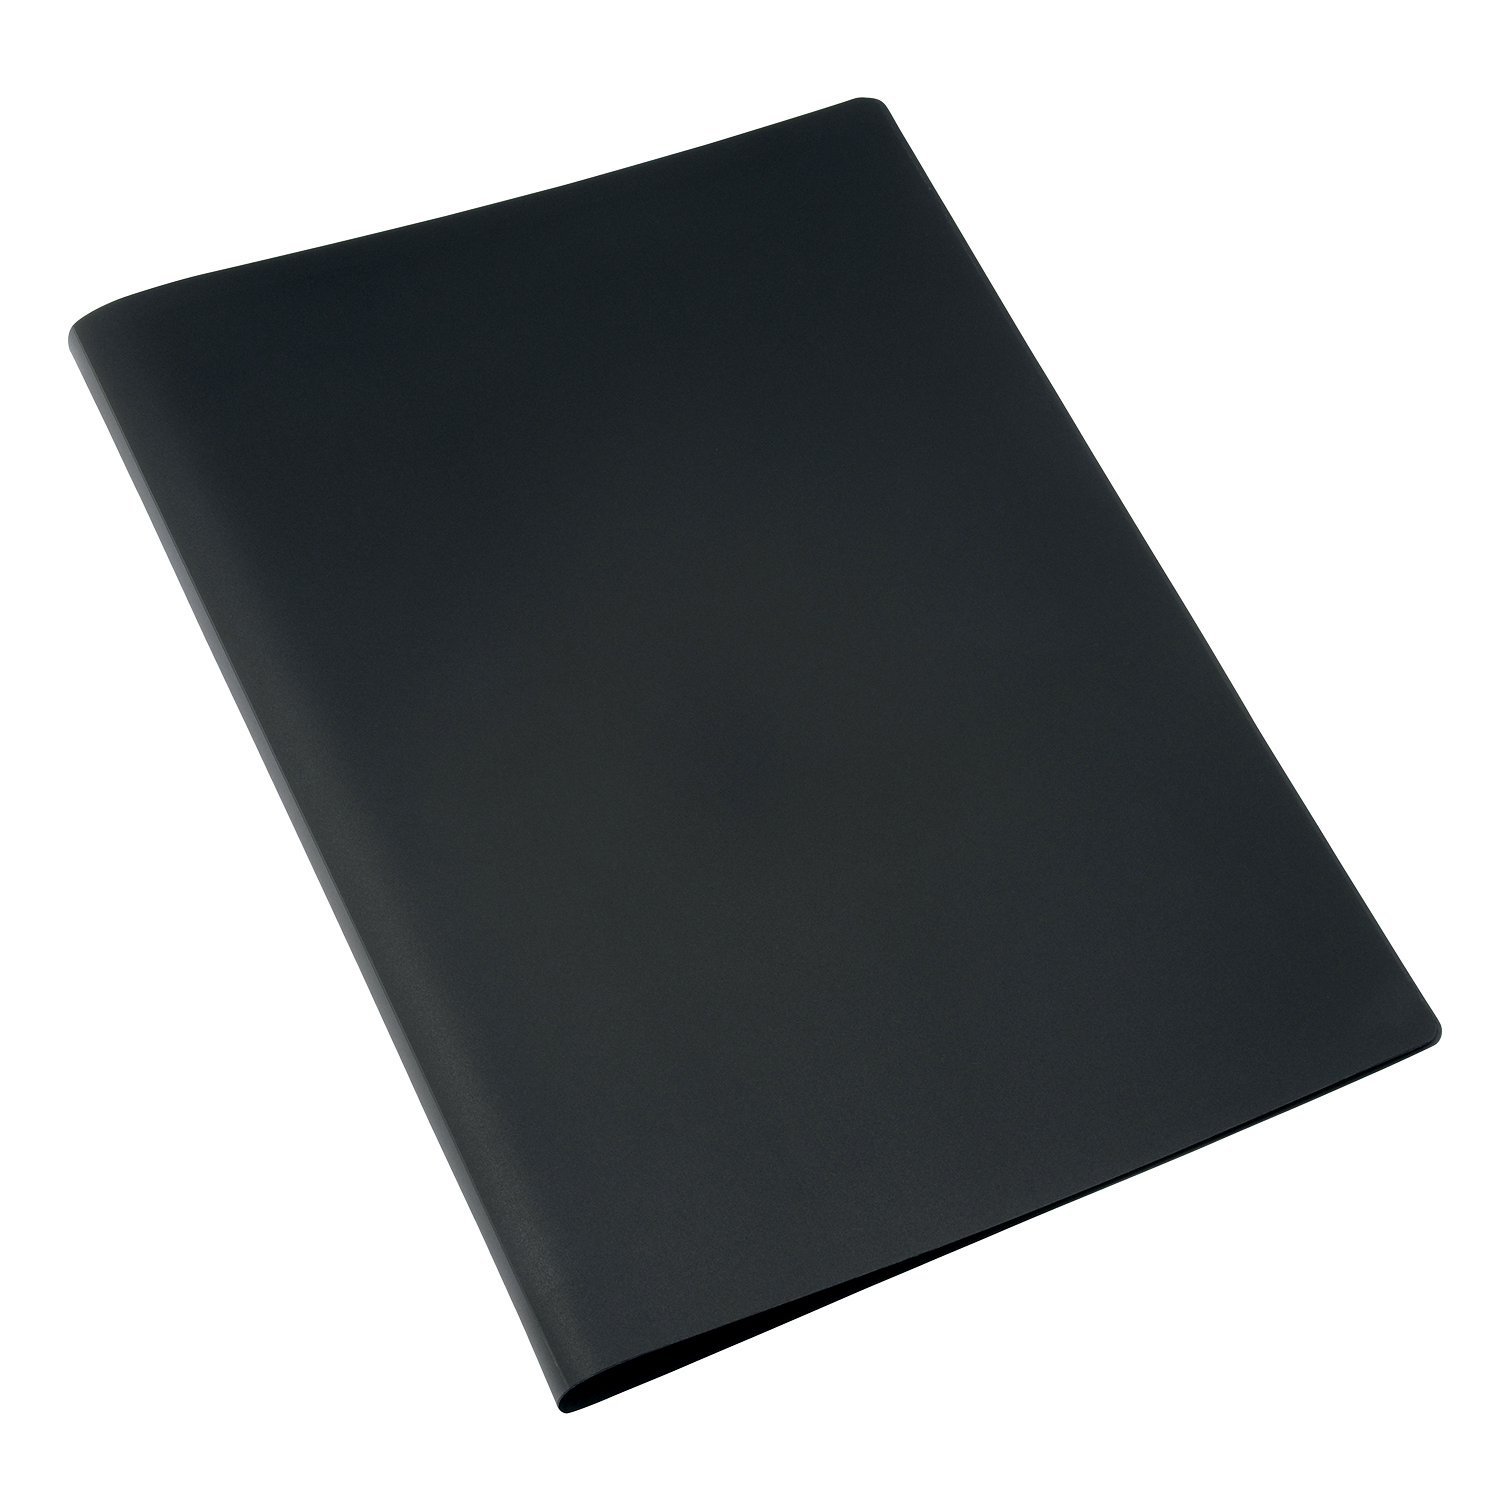 5 Star Soft Cover Disp Bk 10 Pkt Black